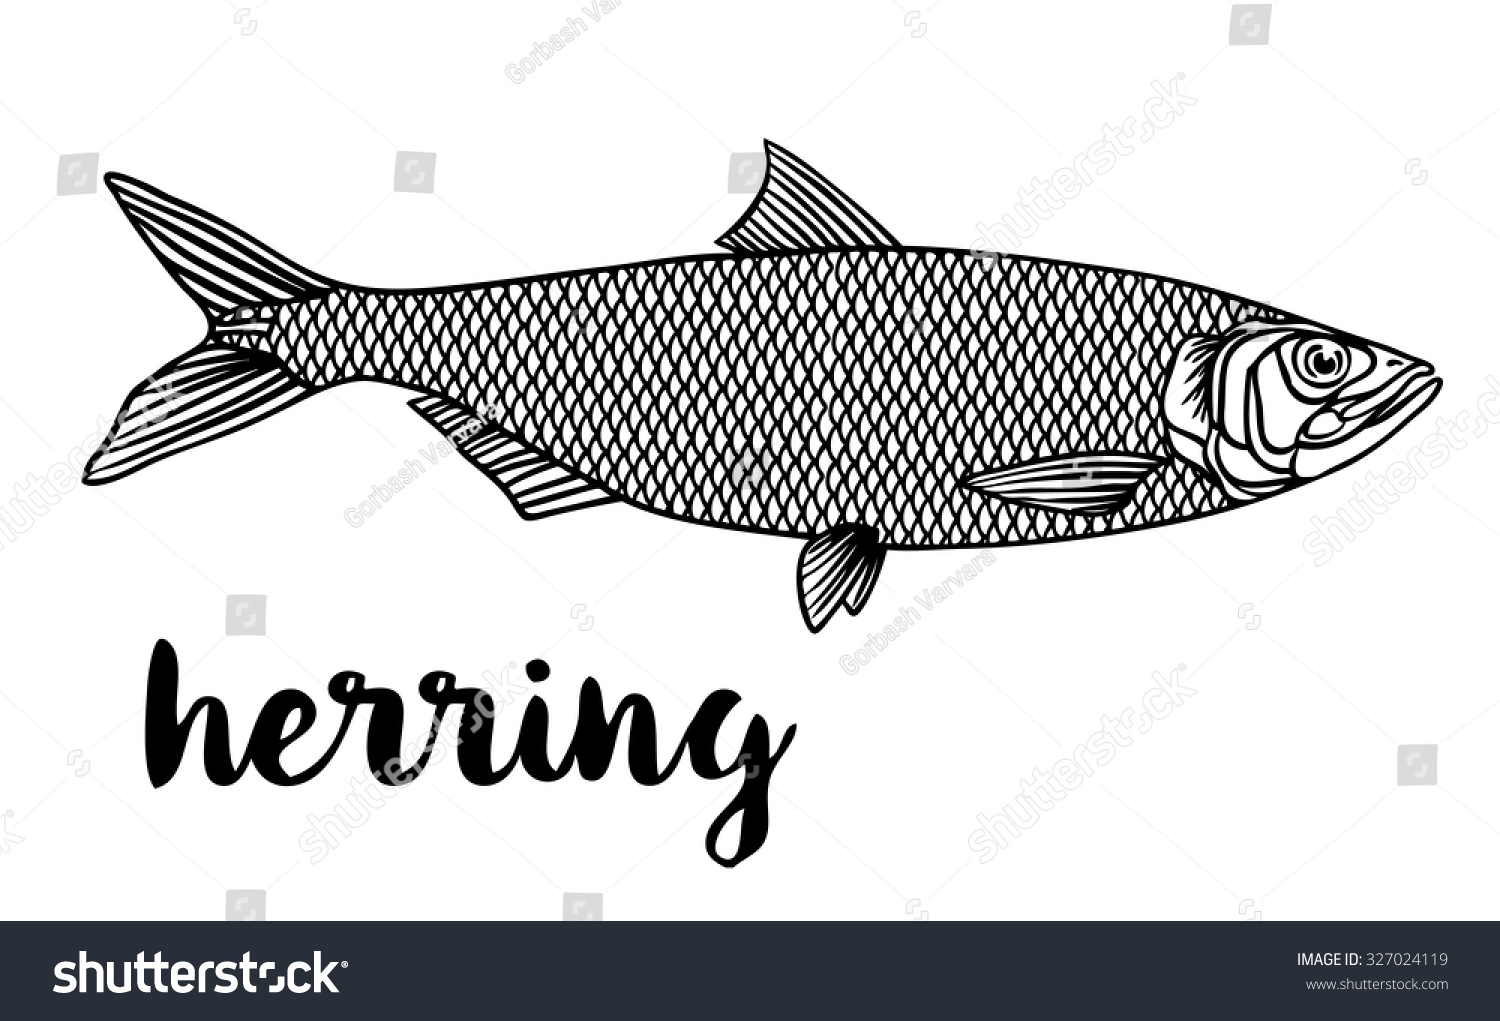 herring coloring pages - photo#19